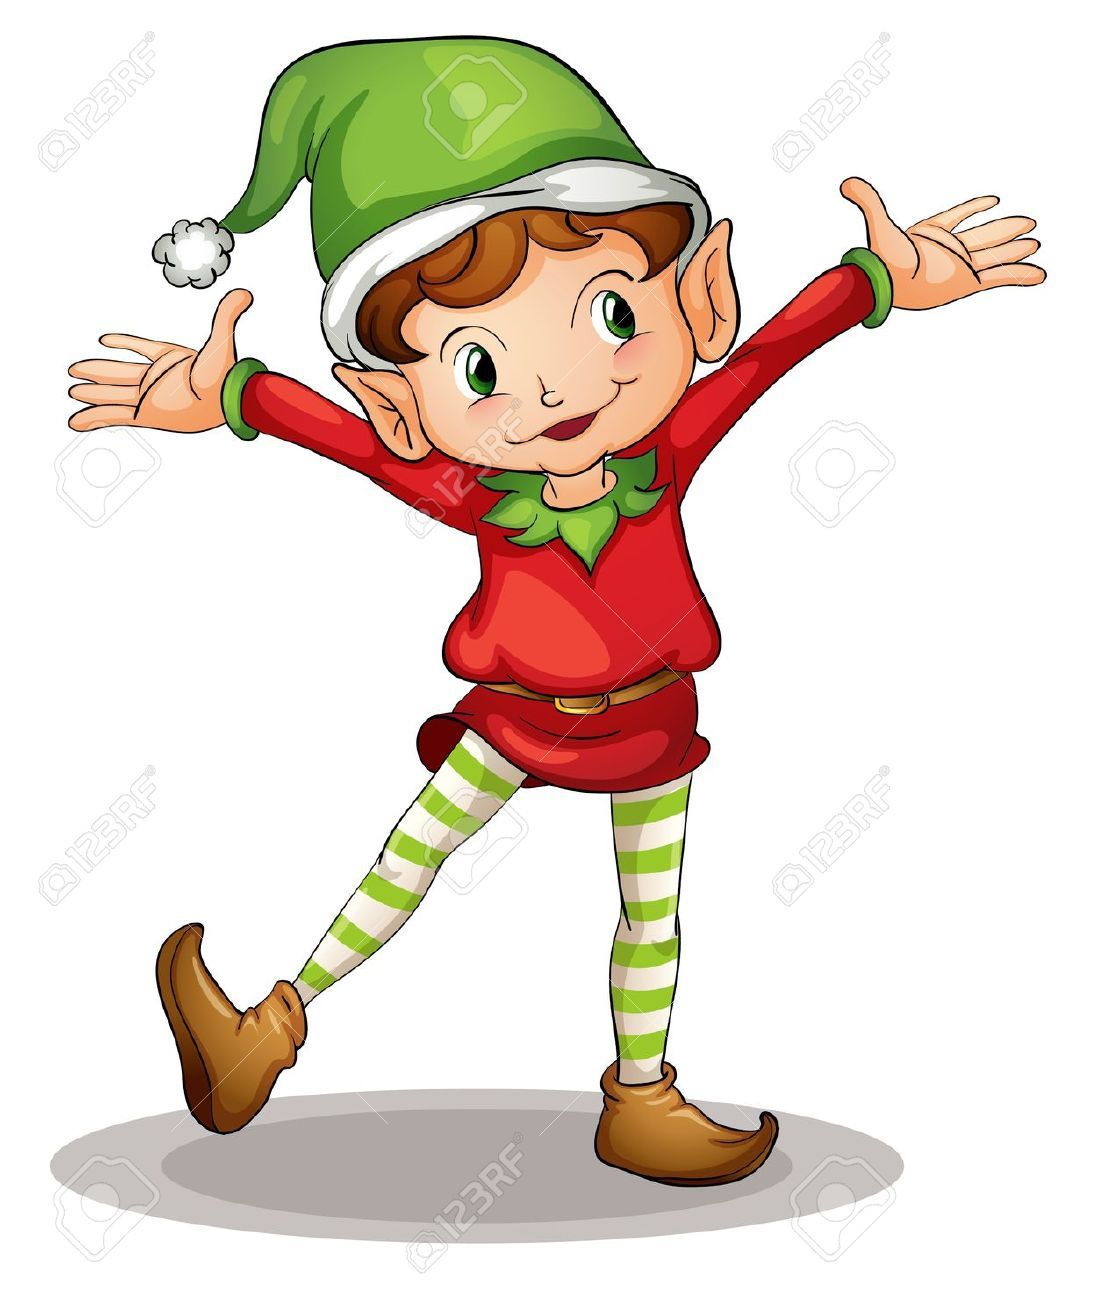 Illustration of a christmas elf royalty free cliparts vectors and stock illustration pic - Clipart weihnachtswichtel ...